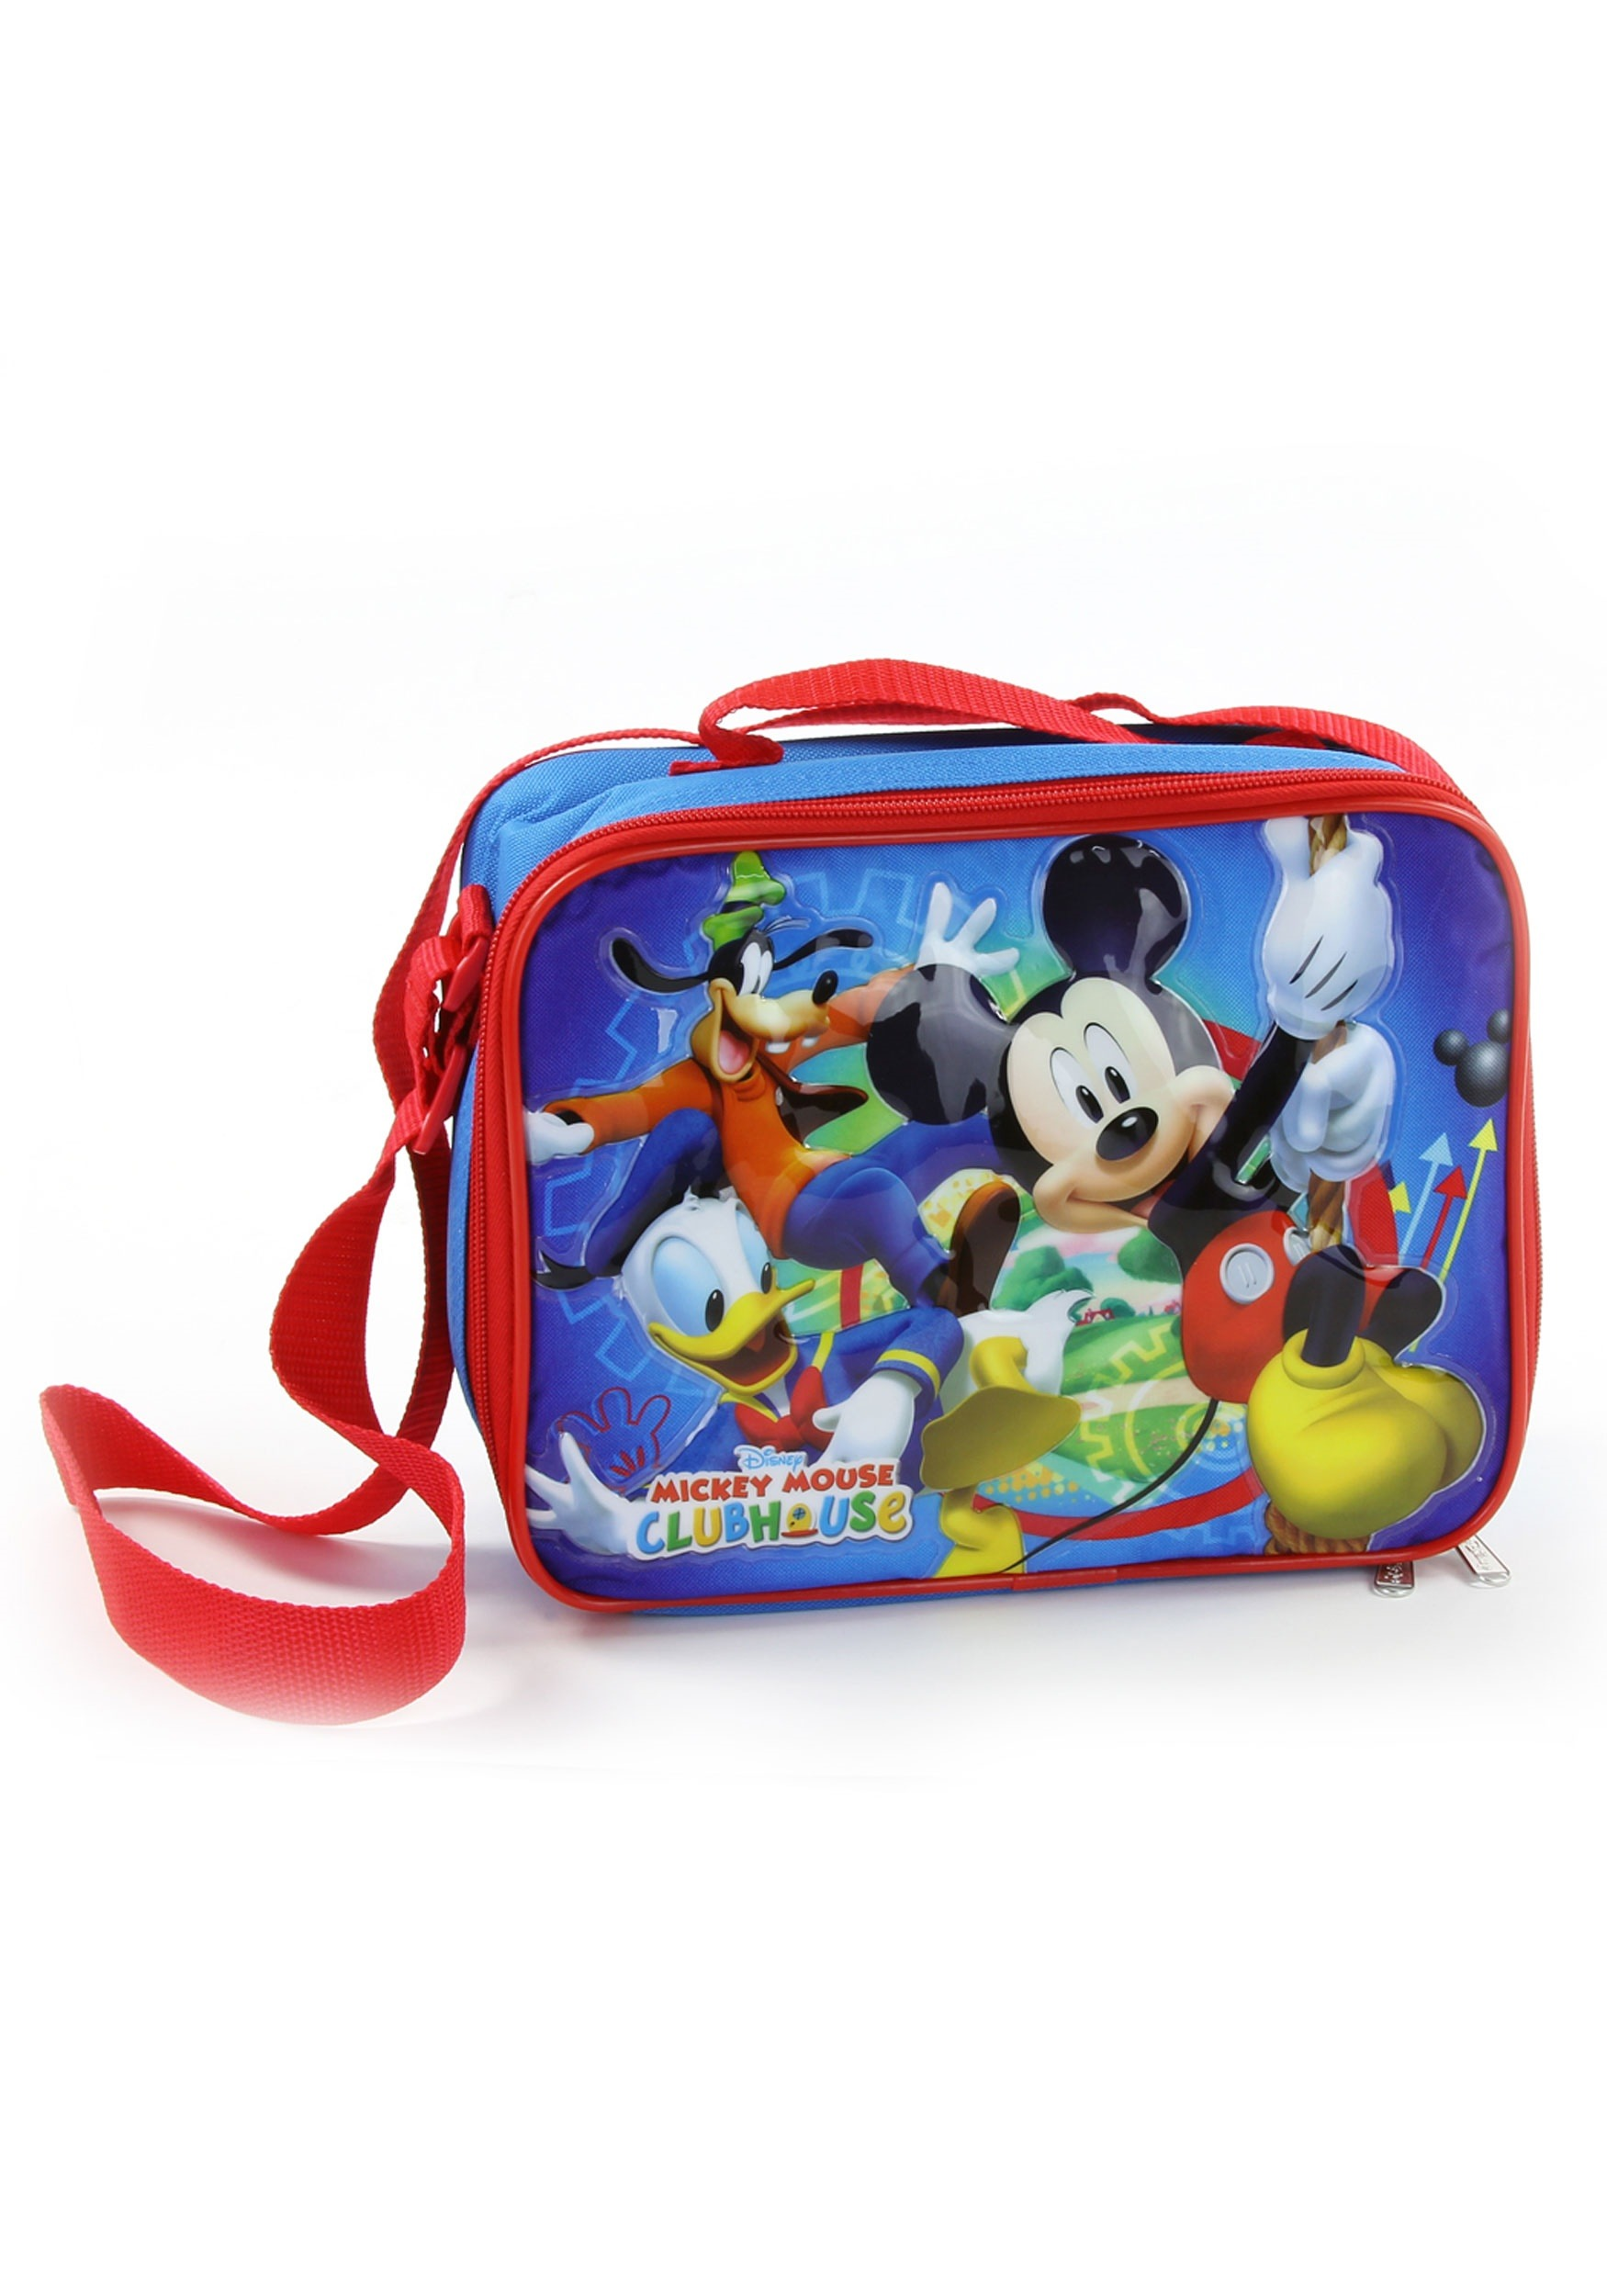 b6bcde65d87 Mickey Mouse Insulated Lunch Bag with Shoulder Strap